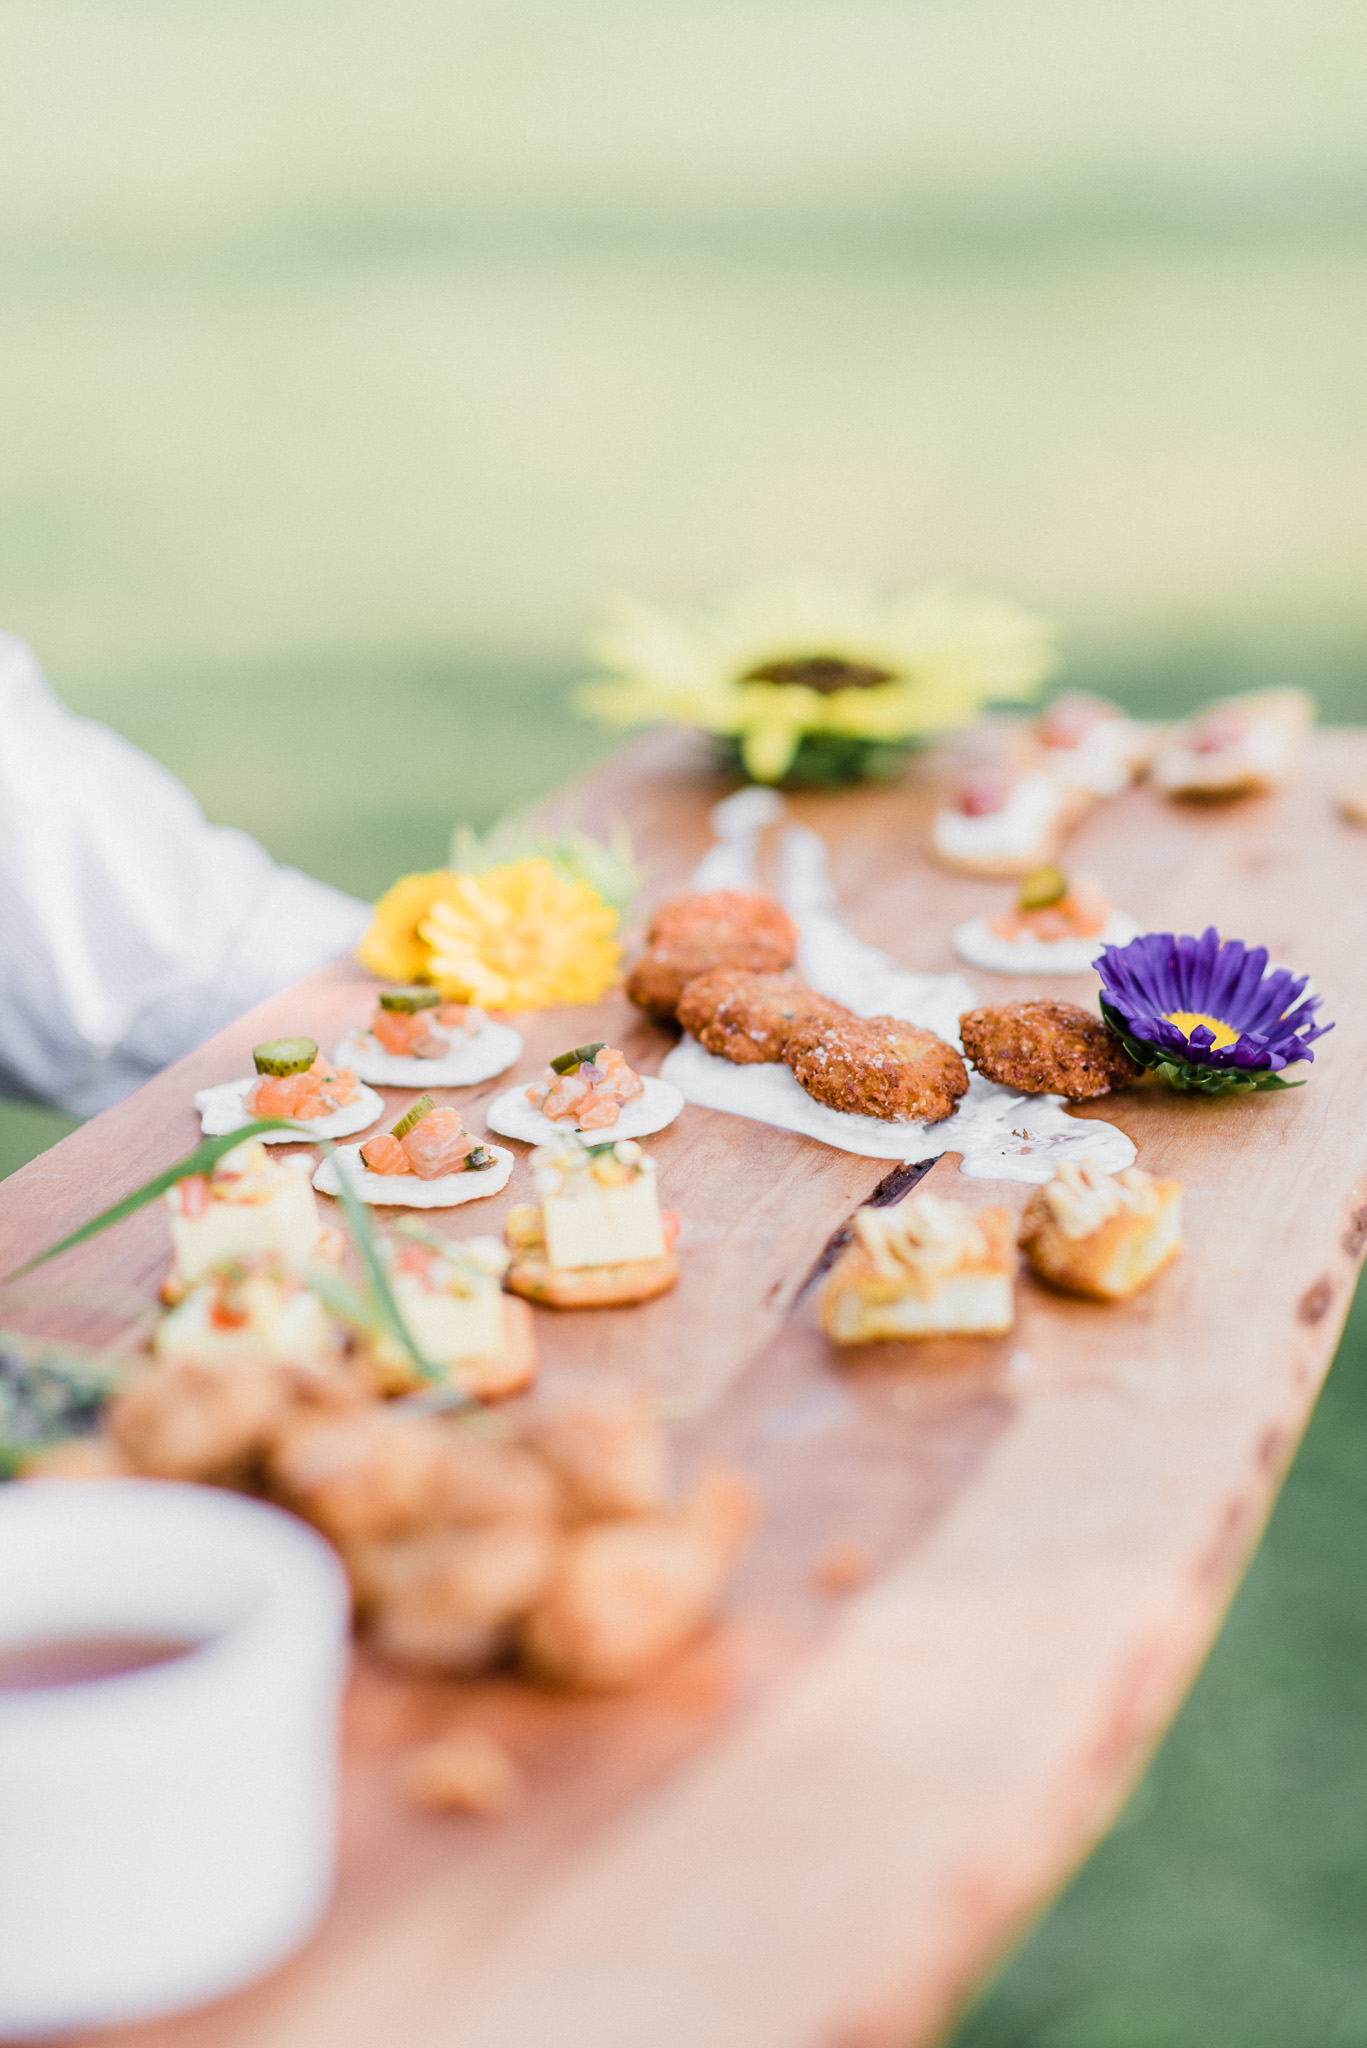 Appetizer Platter at a Summertime Wedding at Earth to Table Farm by Jenn Kavanagh Photography